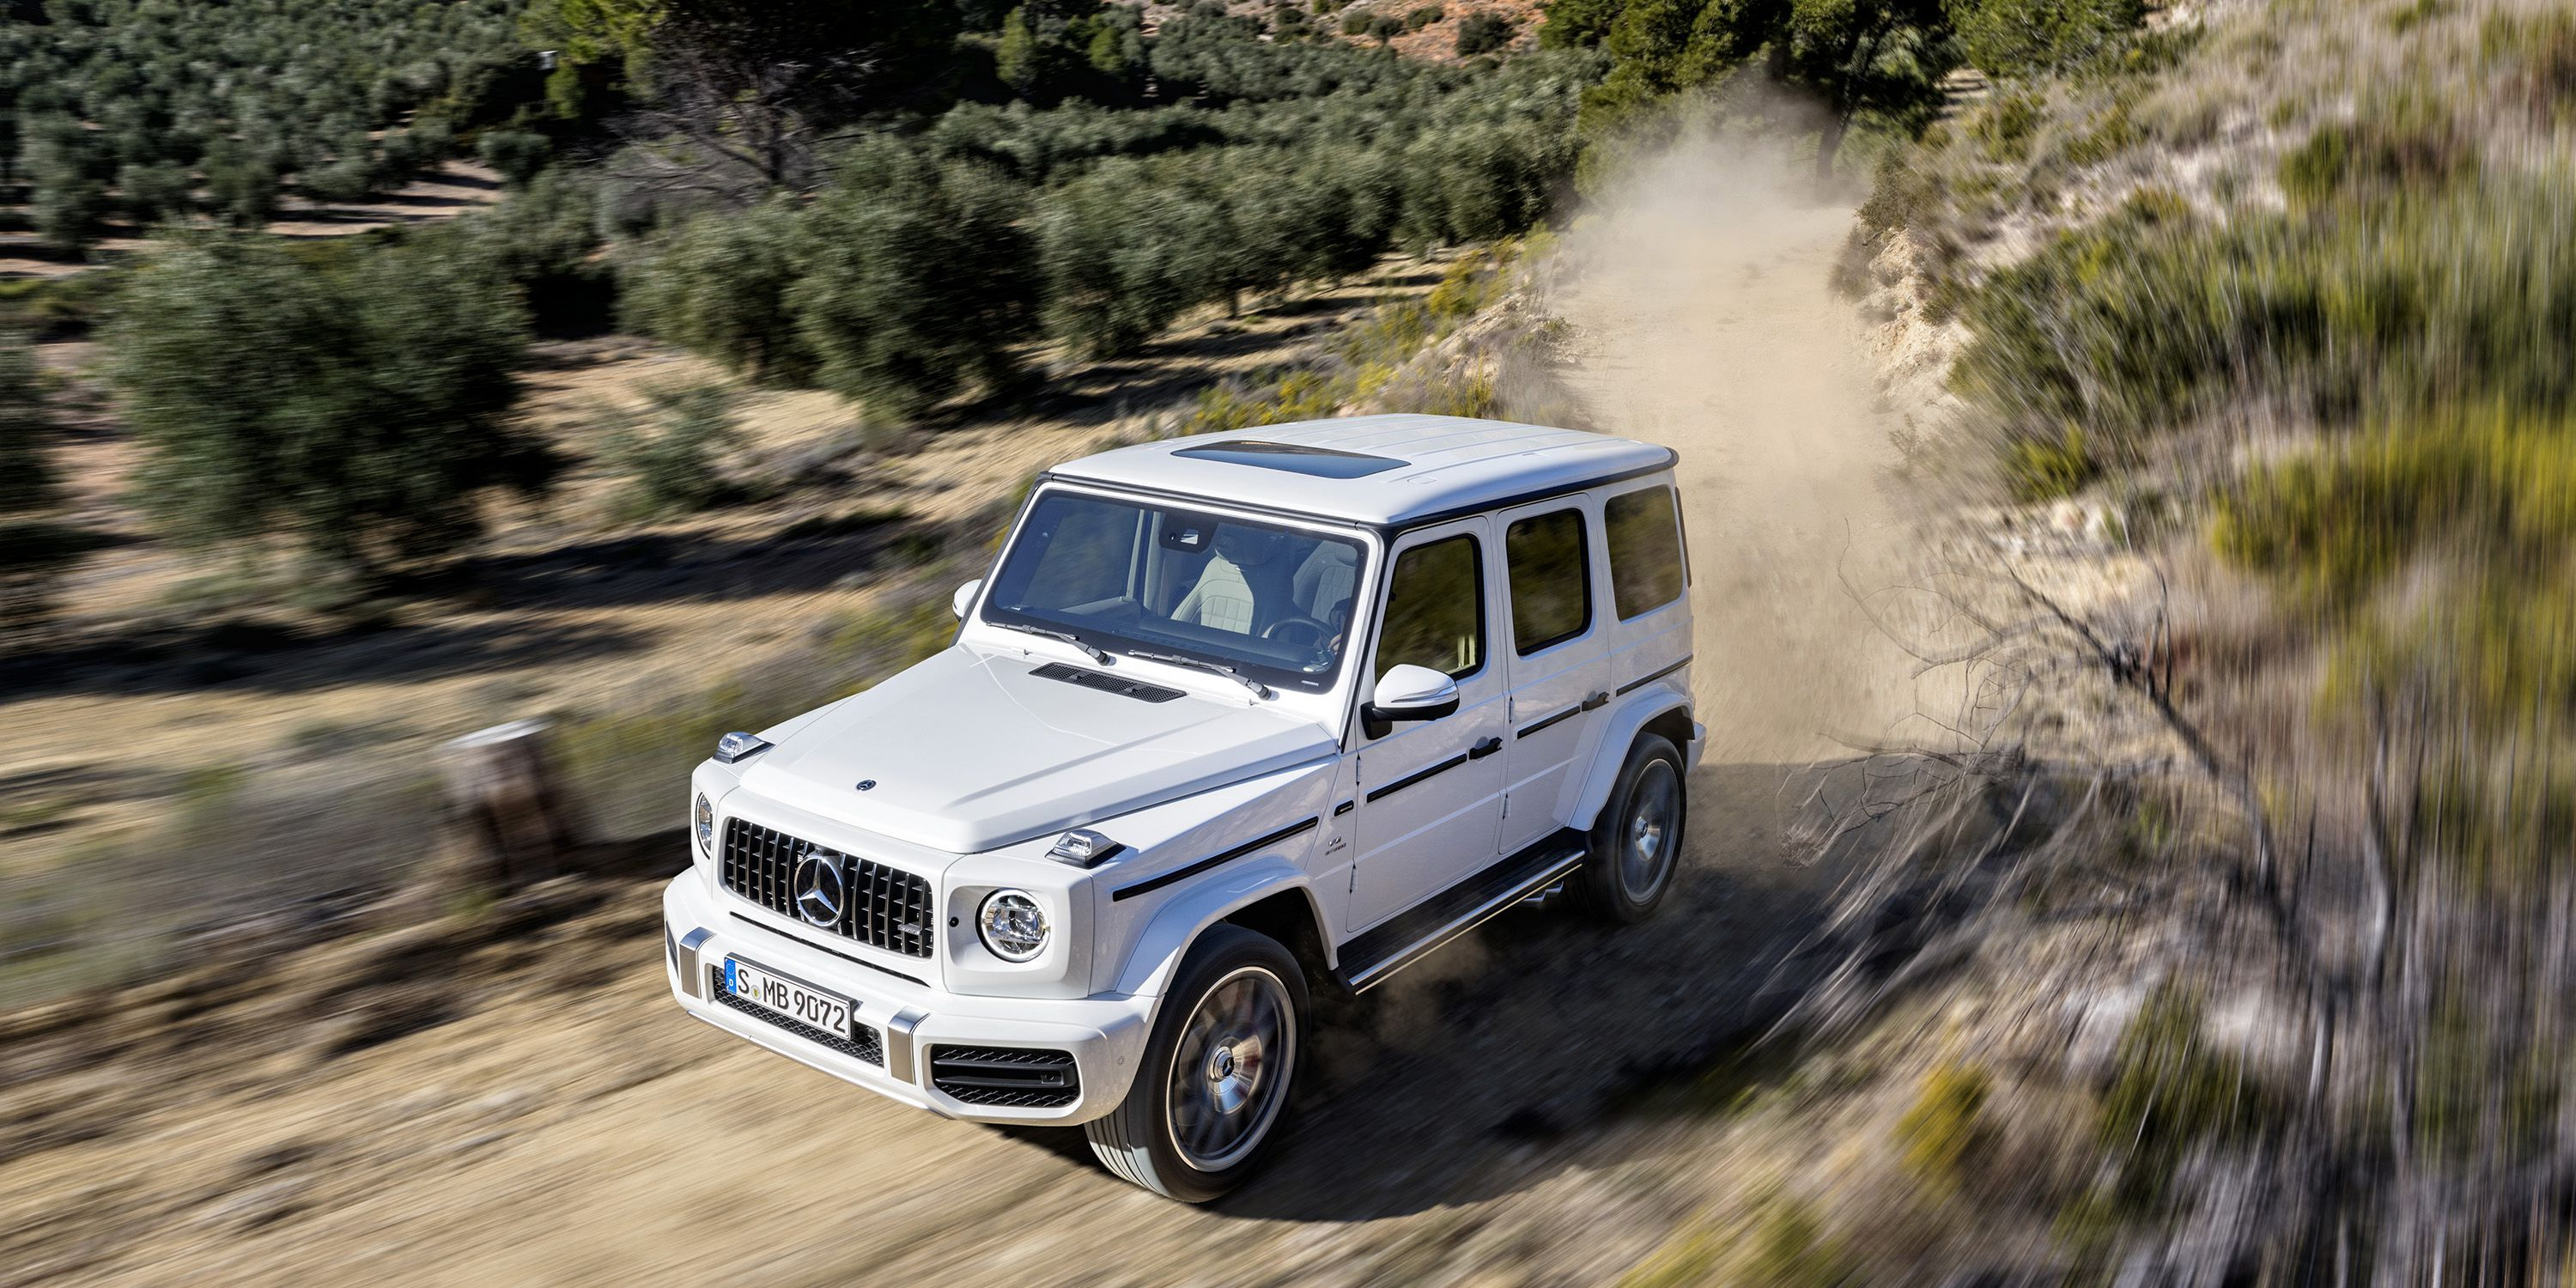 10 fastest suvs for 2018 most powerful suvs with 550 horsepower rh roadandtrack com